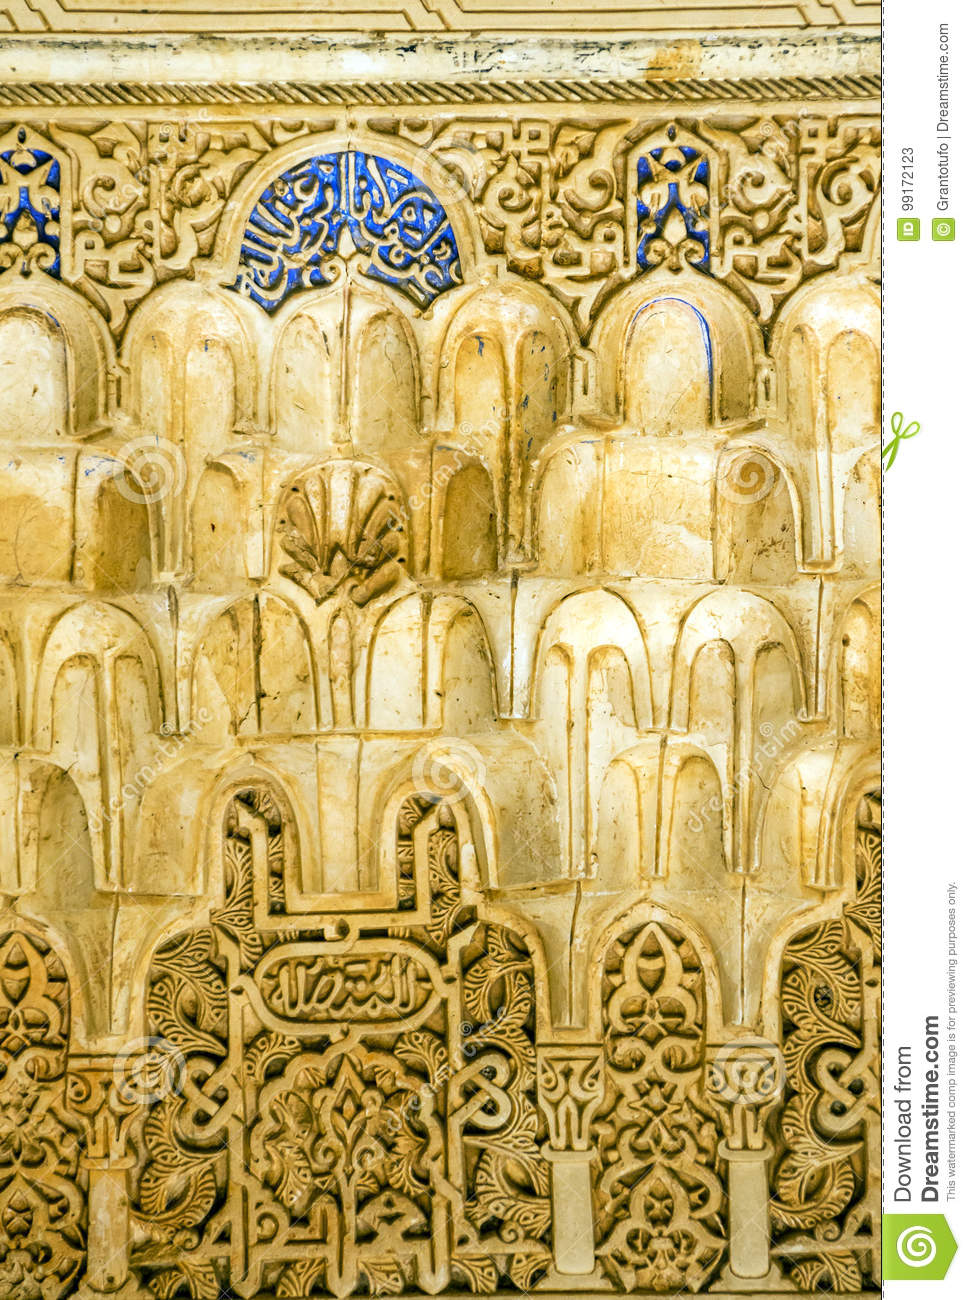 Detailed background of the intricate patterns on a wall of the Alhambra Palace, Granada, Spain. It´s a vertical picture.